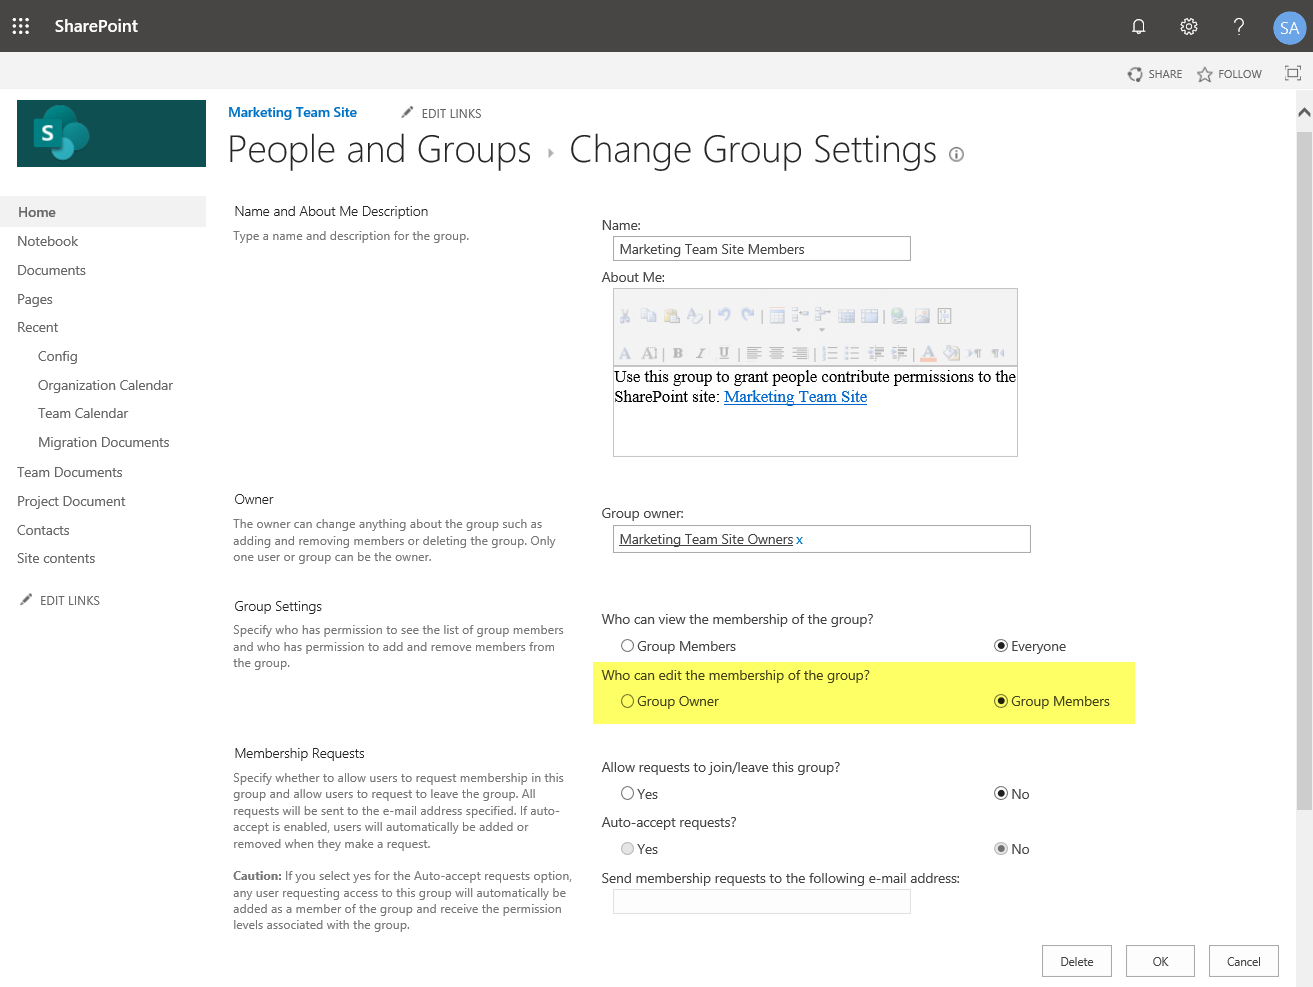 sharepoint online group settings